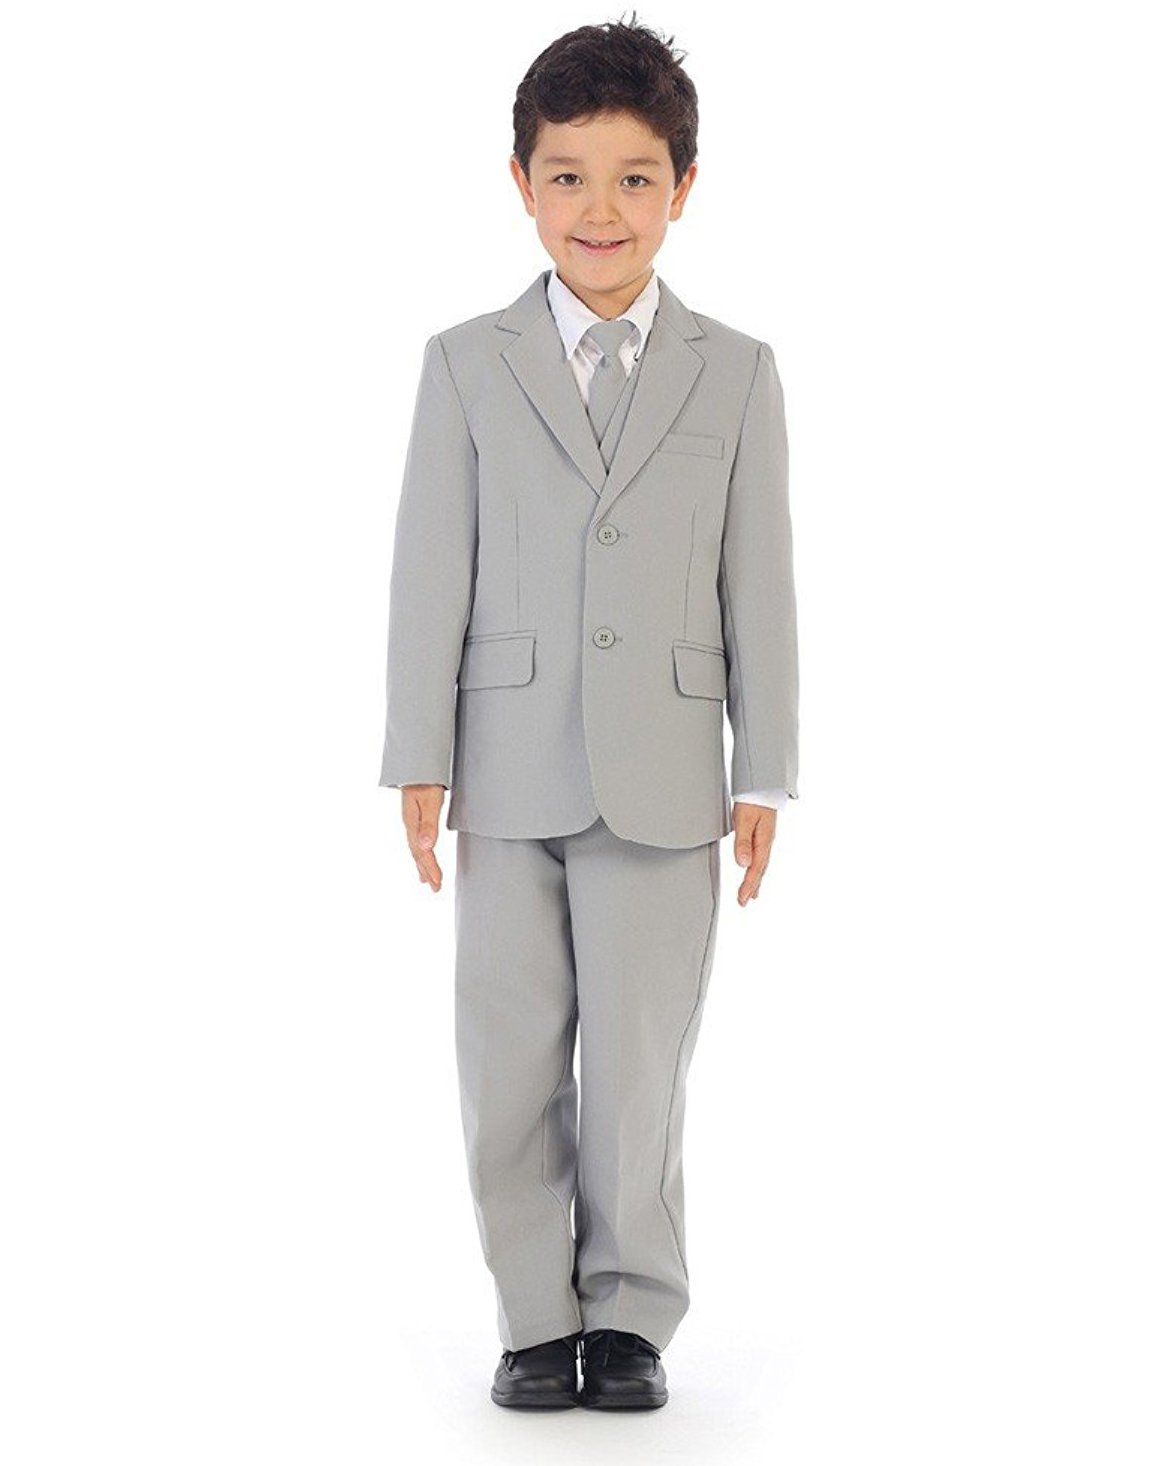 iGirldress Boys Slim Fit 5-Piece Formal Suit Set with Matching Neck Tie Silver Size 4